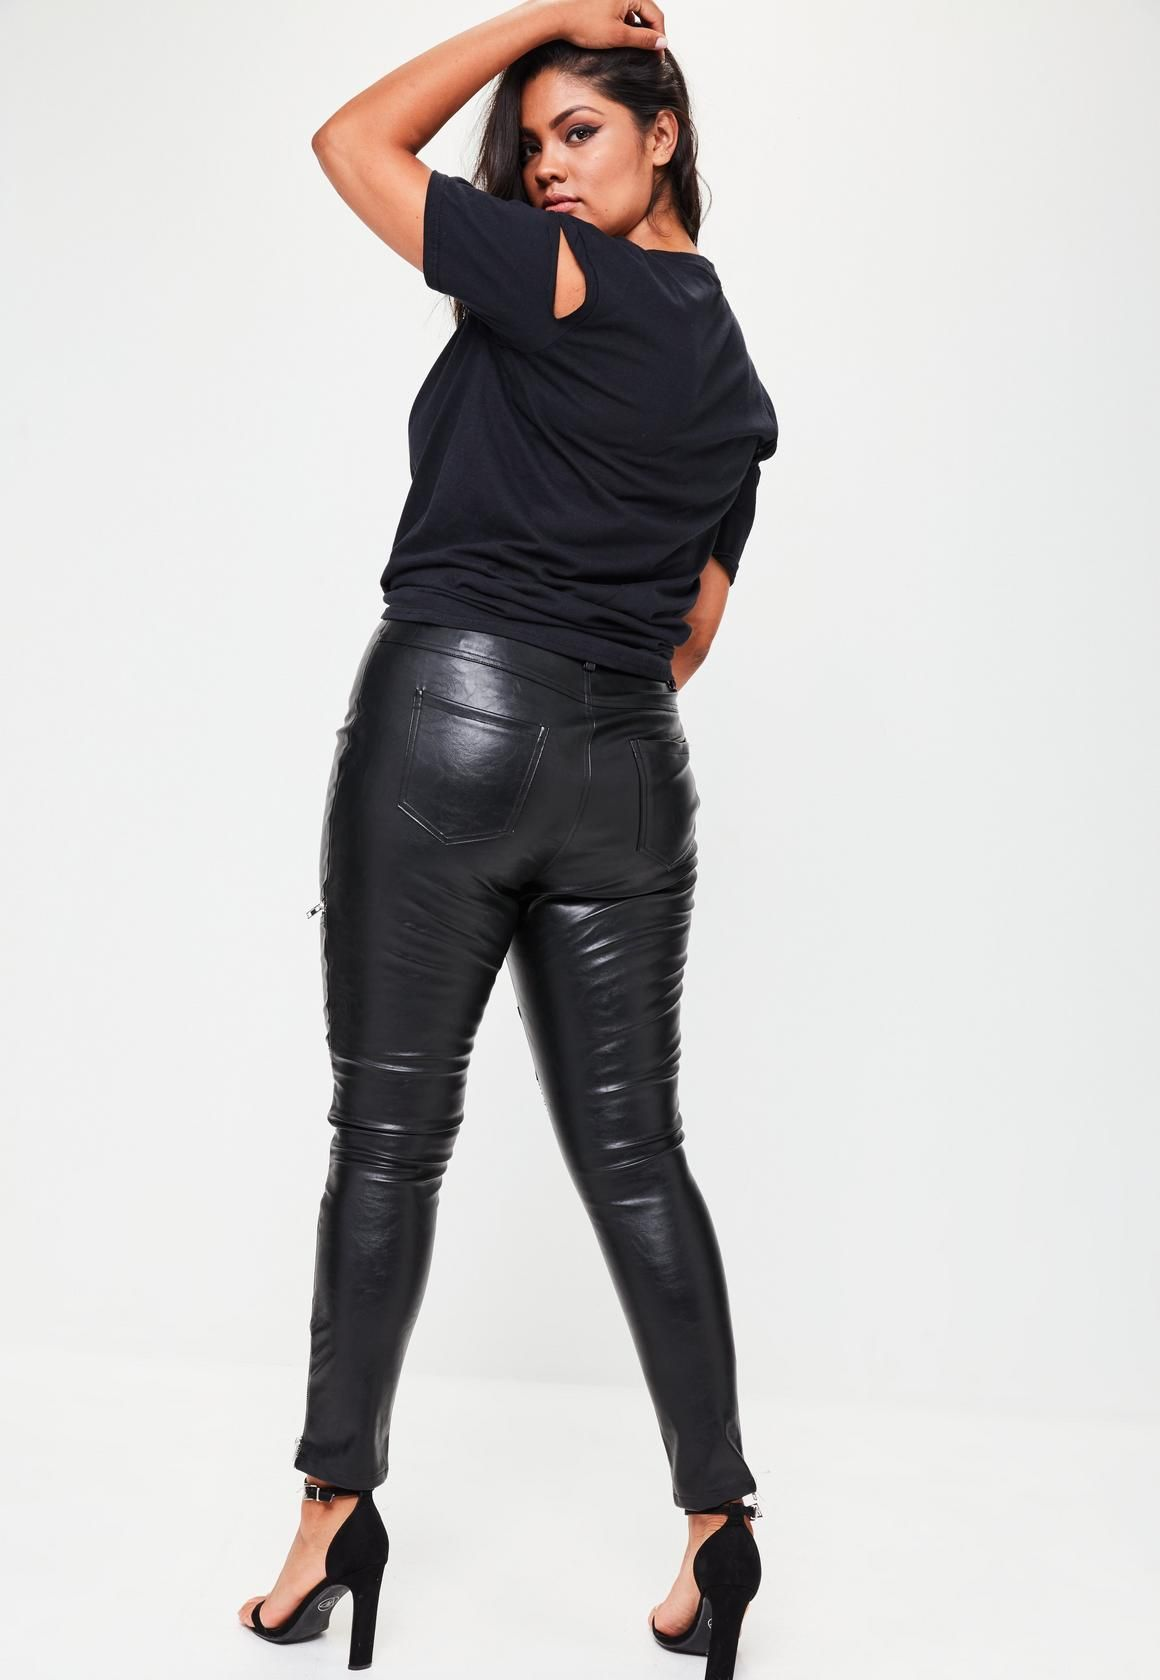 d802393fa58 Missguided - Plus Size Black Premium Faux Leather Pants